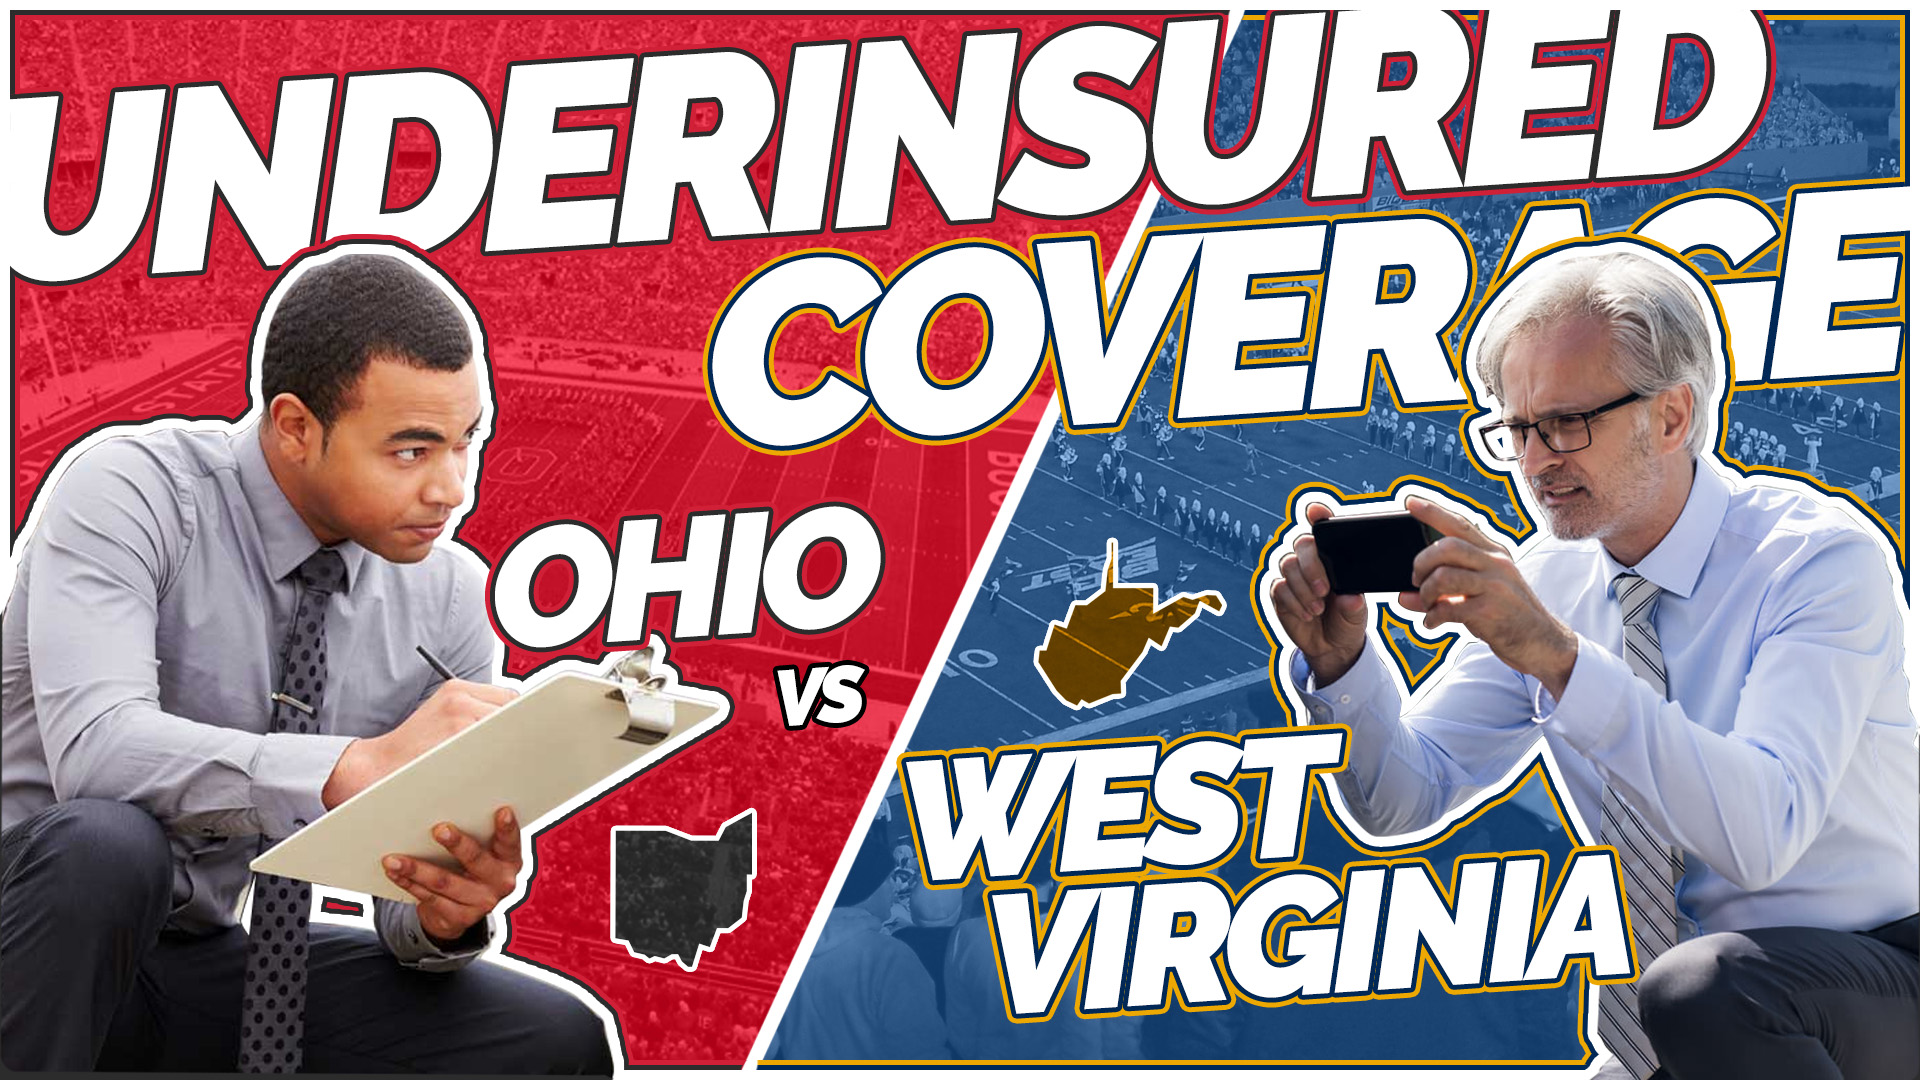 Underinsured Coverage in Ohio vs West Virginia